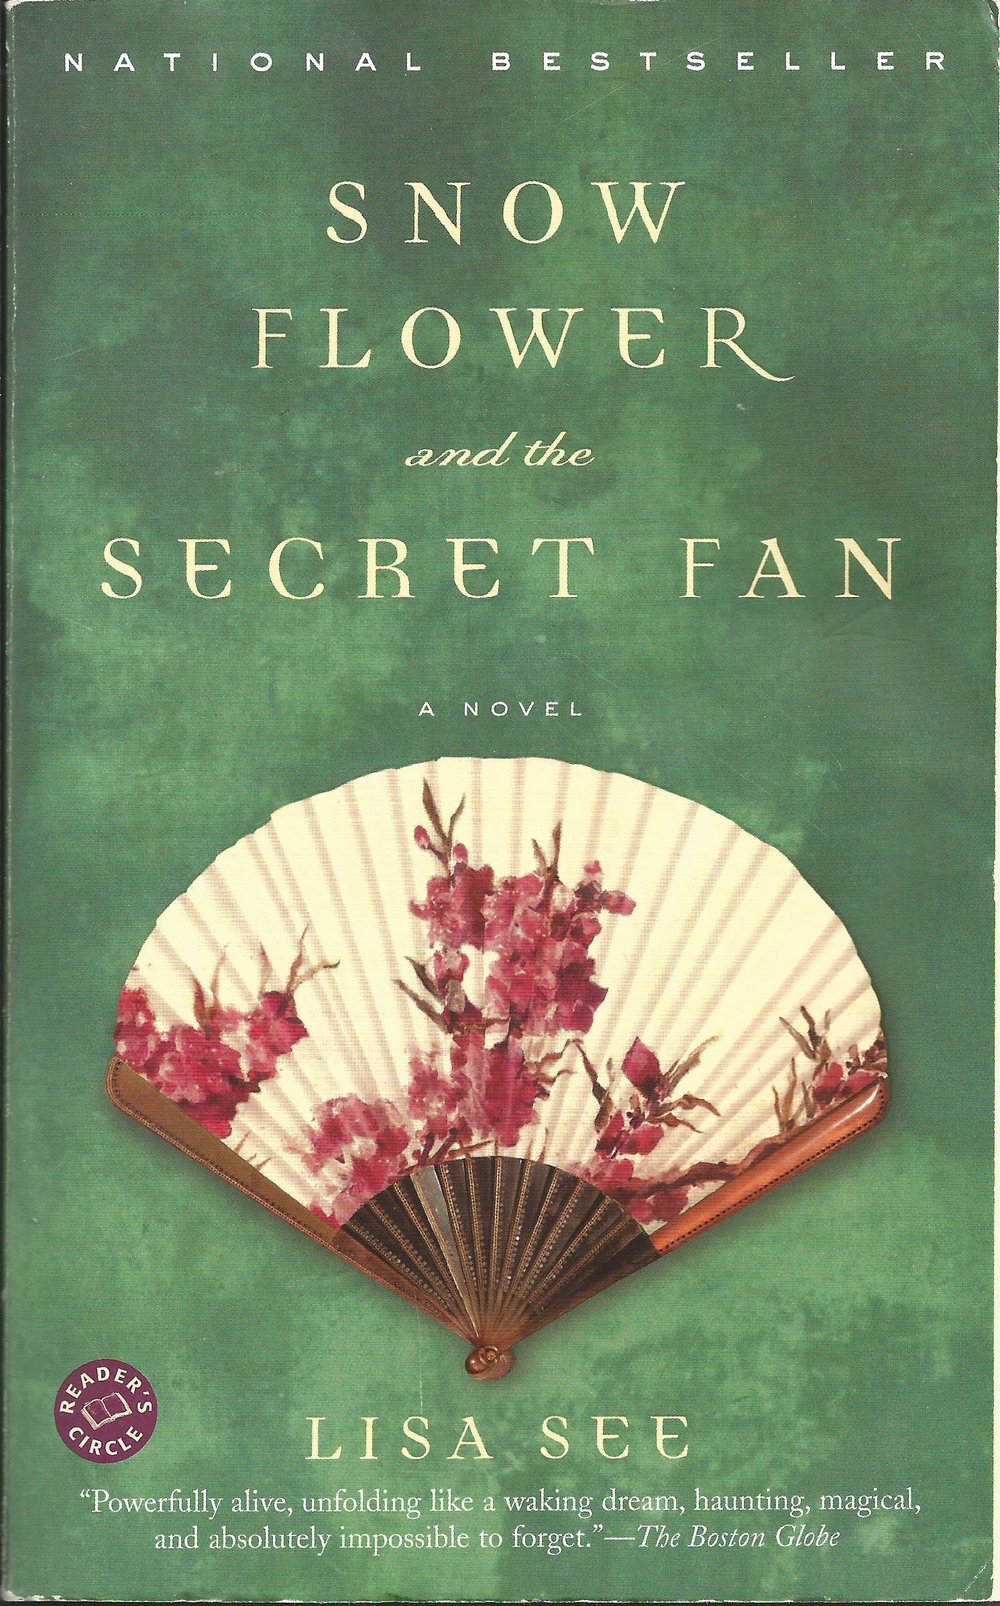 snow flower and the secret fan by lisa see.jpg